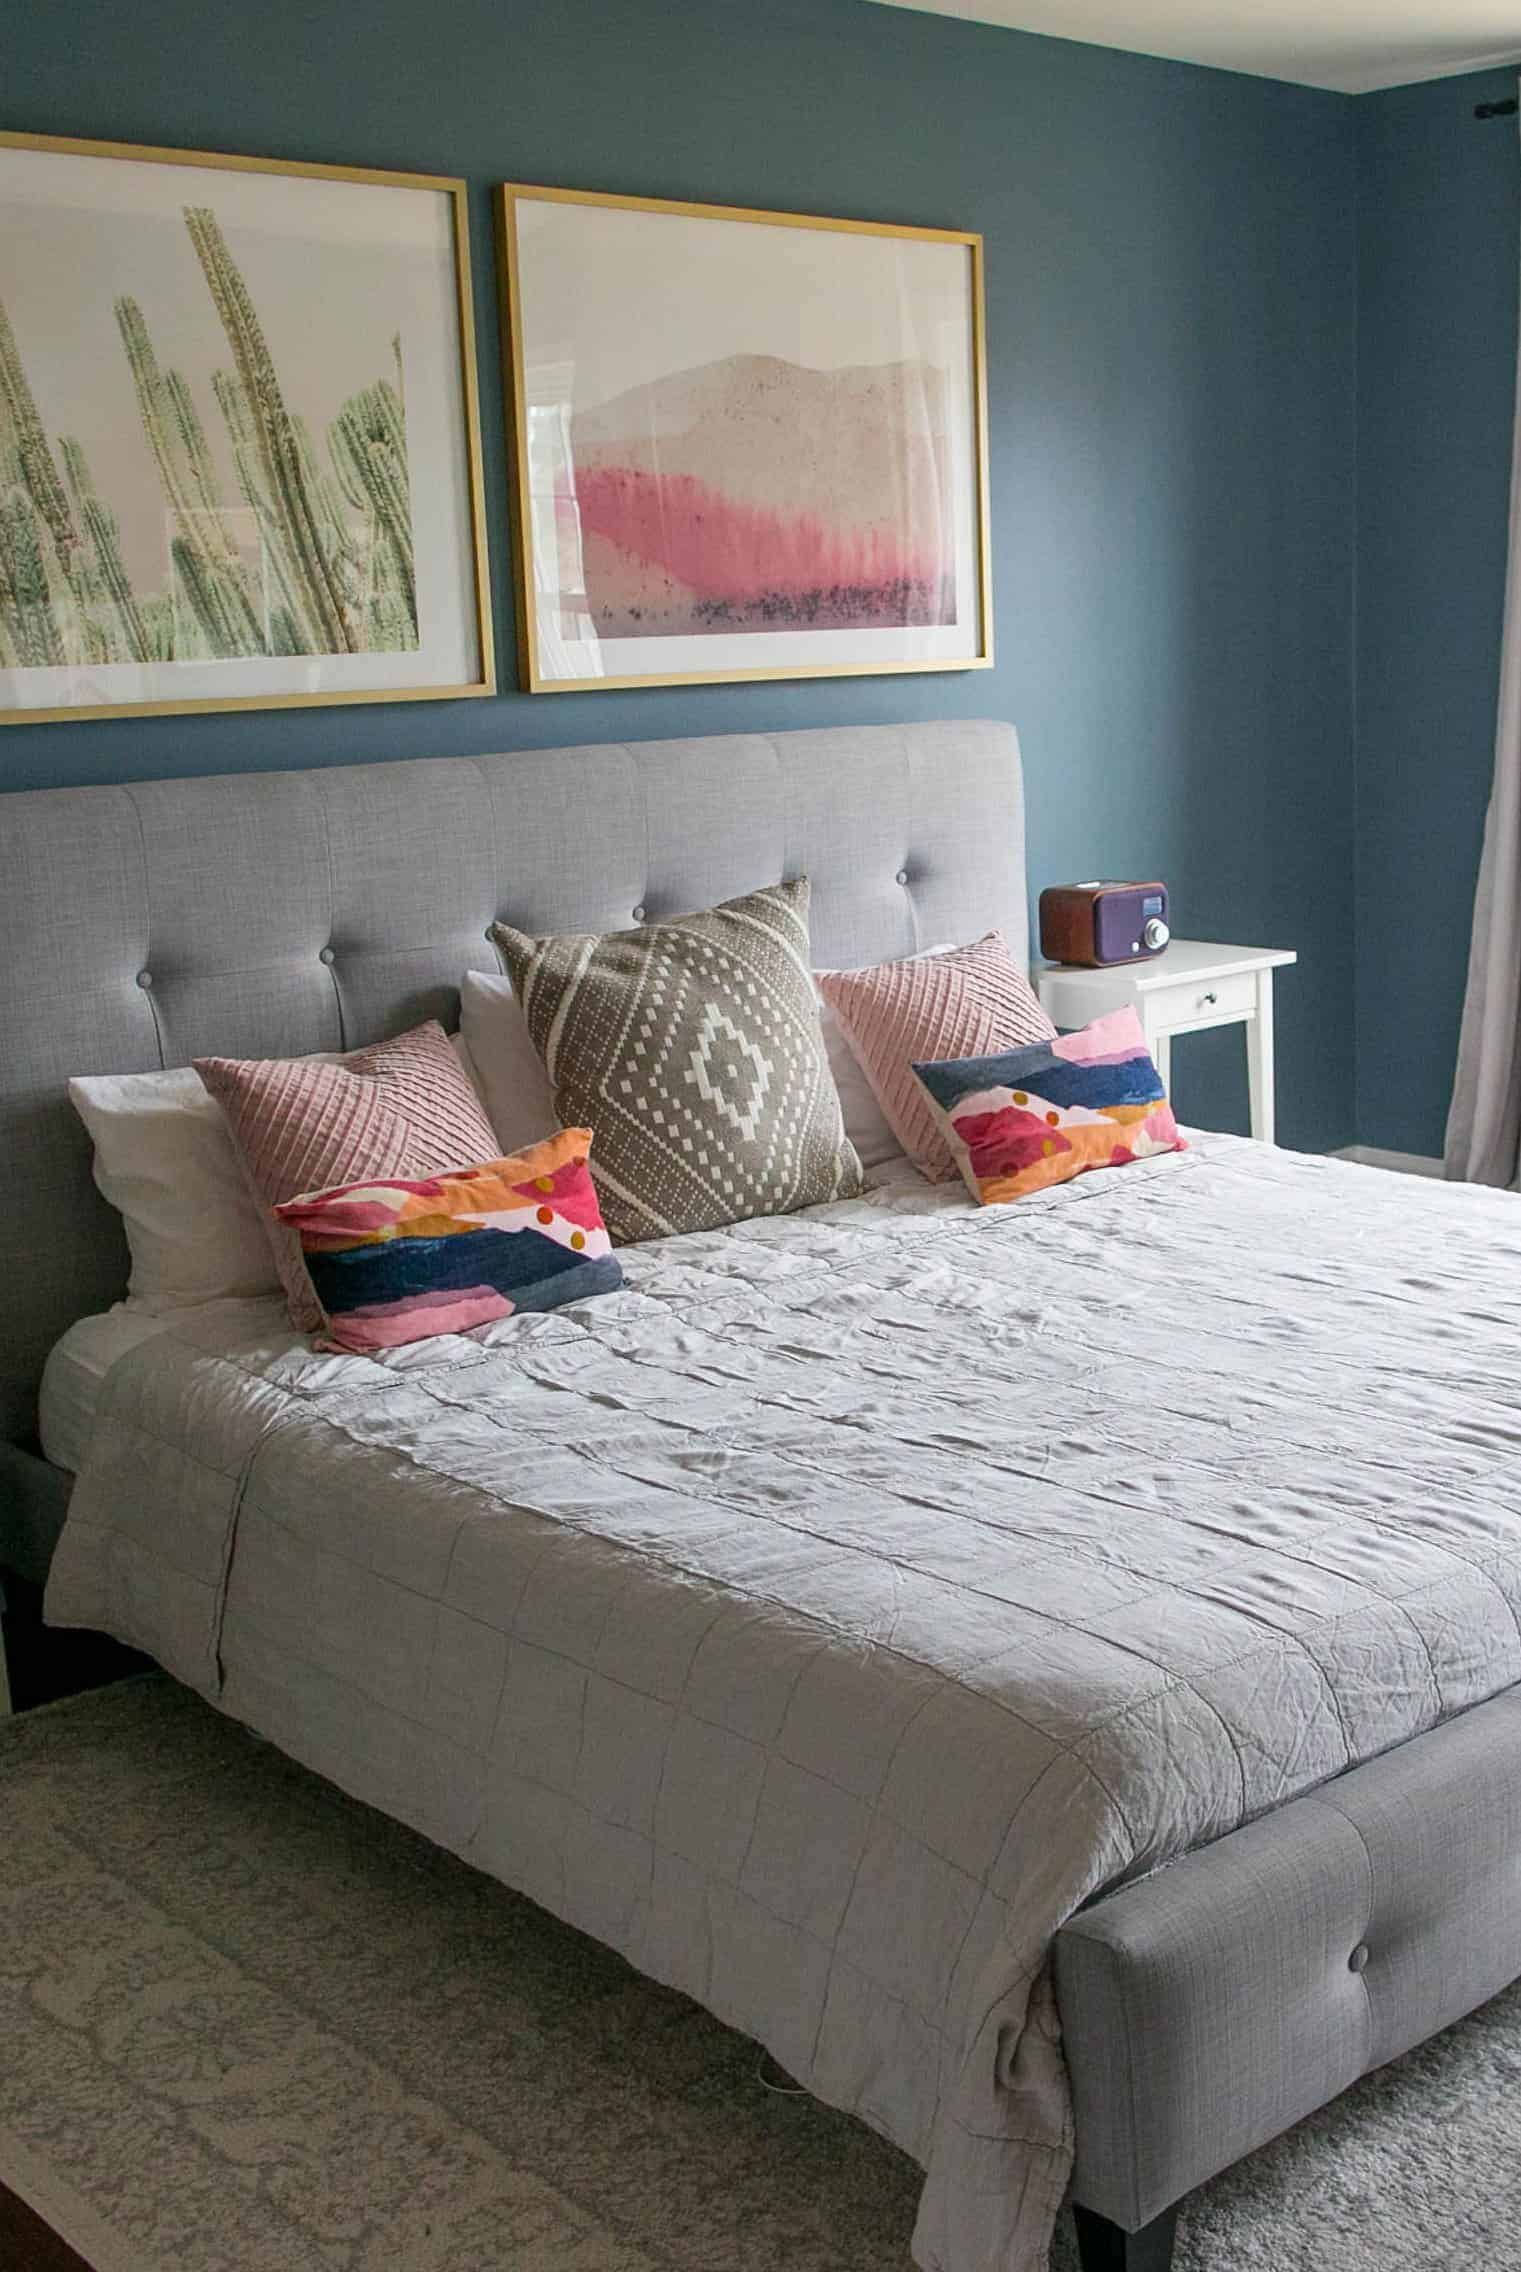 How To Give Your Bedroom a Feng Shui Makeover Bedroom